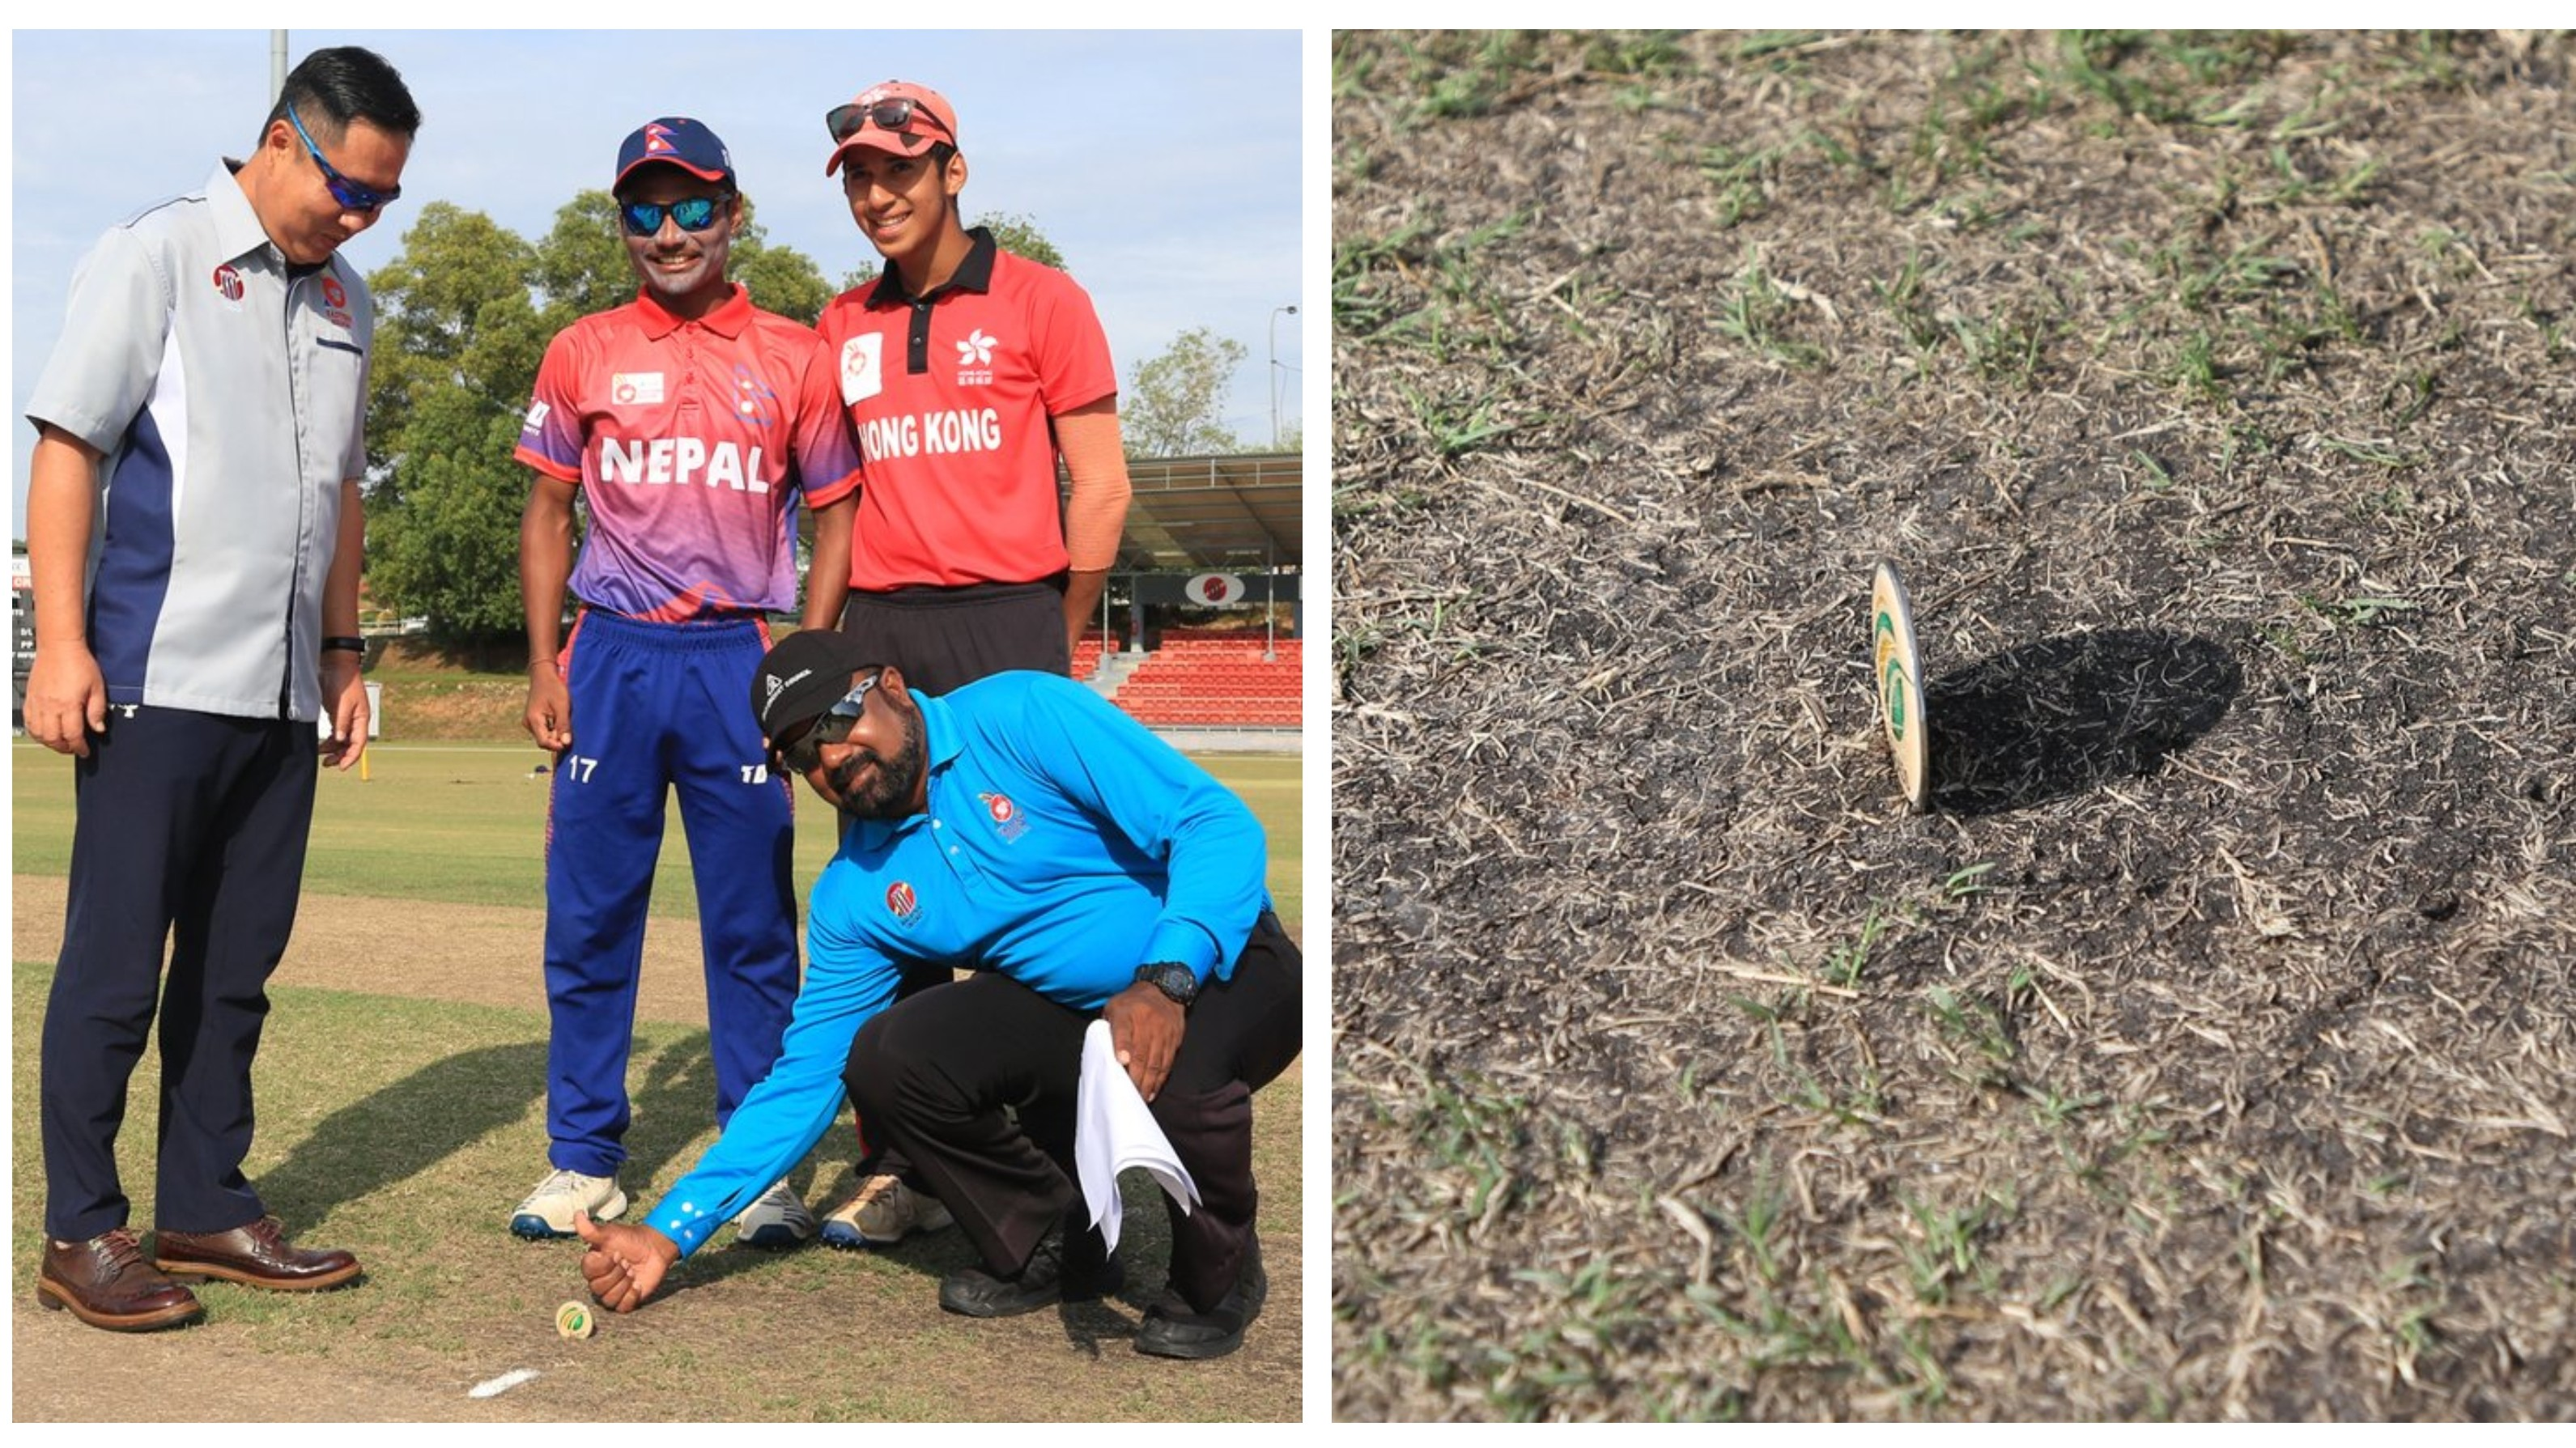 WATCH: Coin lands straight during toss in Nepal-Hong Kong Under-19 match